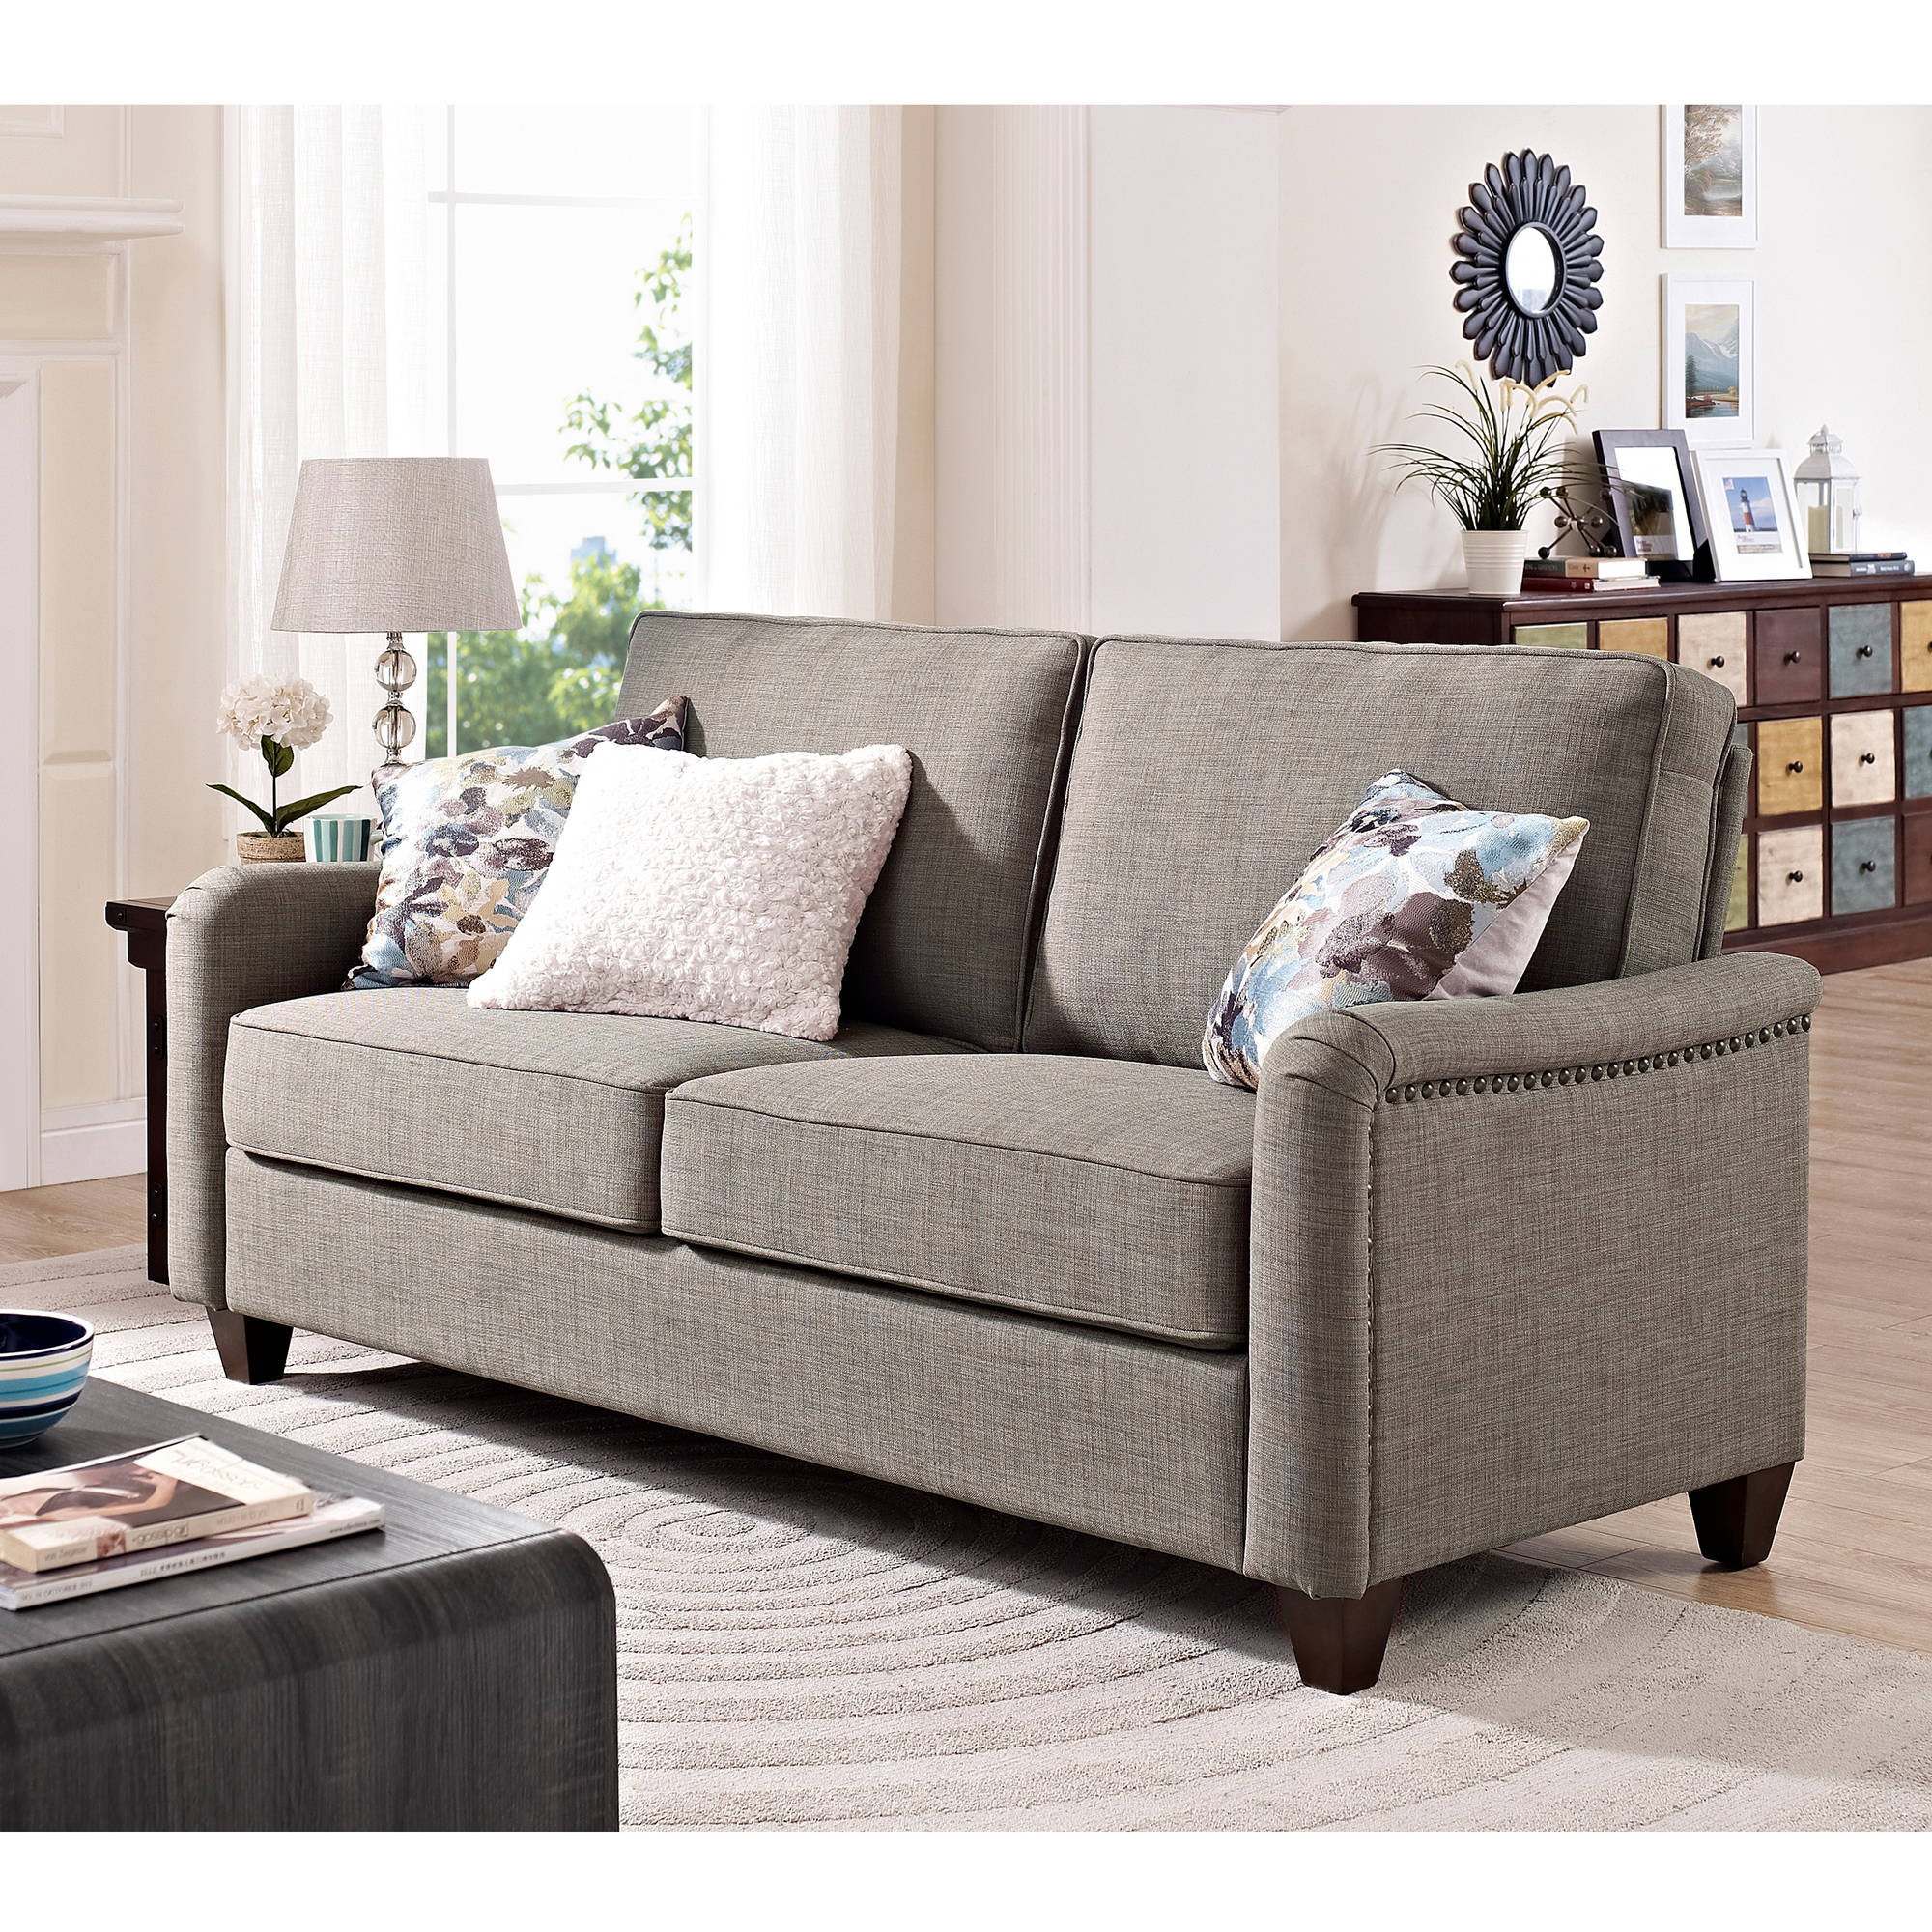 Better Homes And Gardens Grayson Sofa With Nailheads, Grey